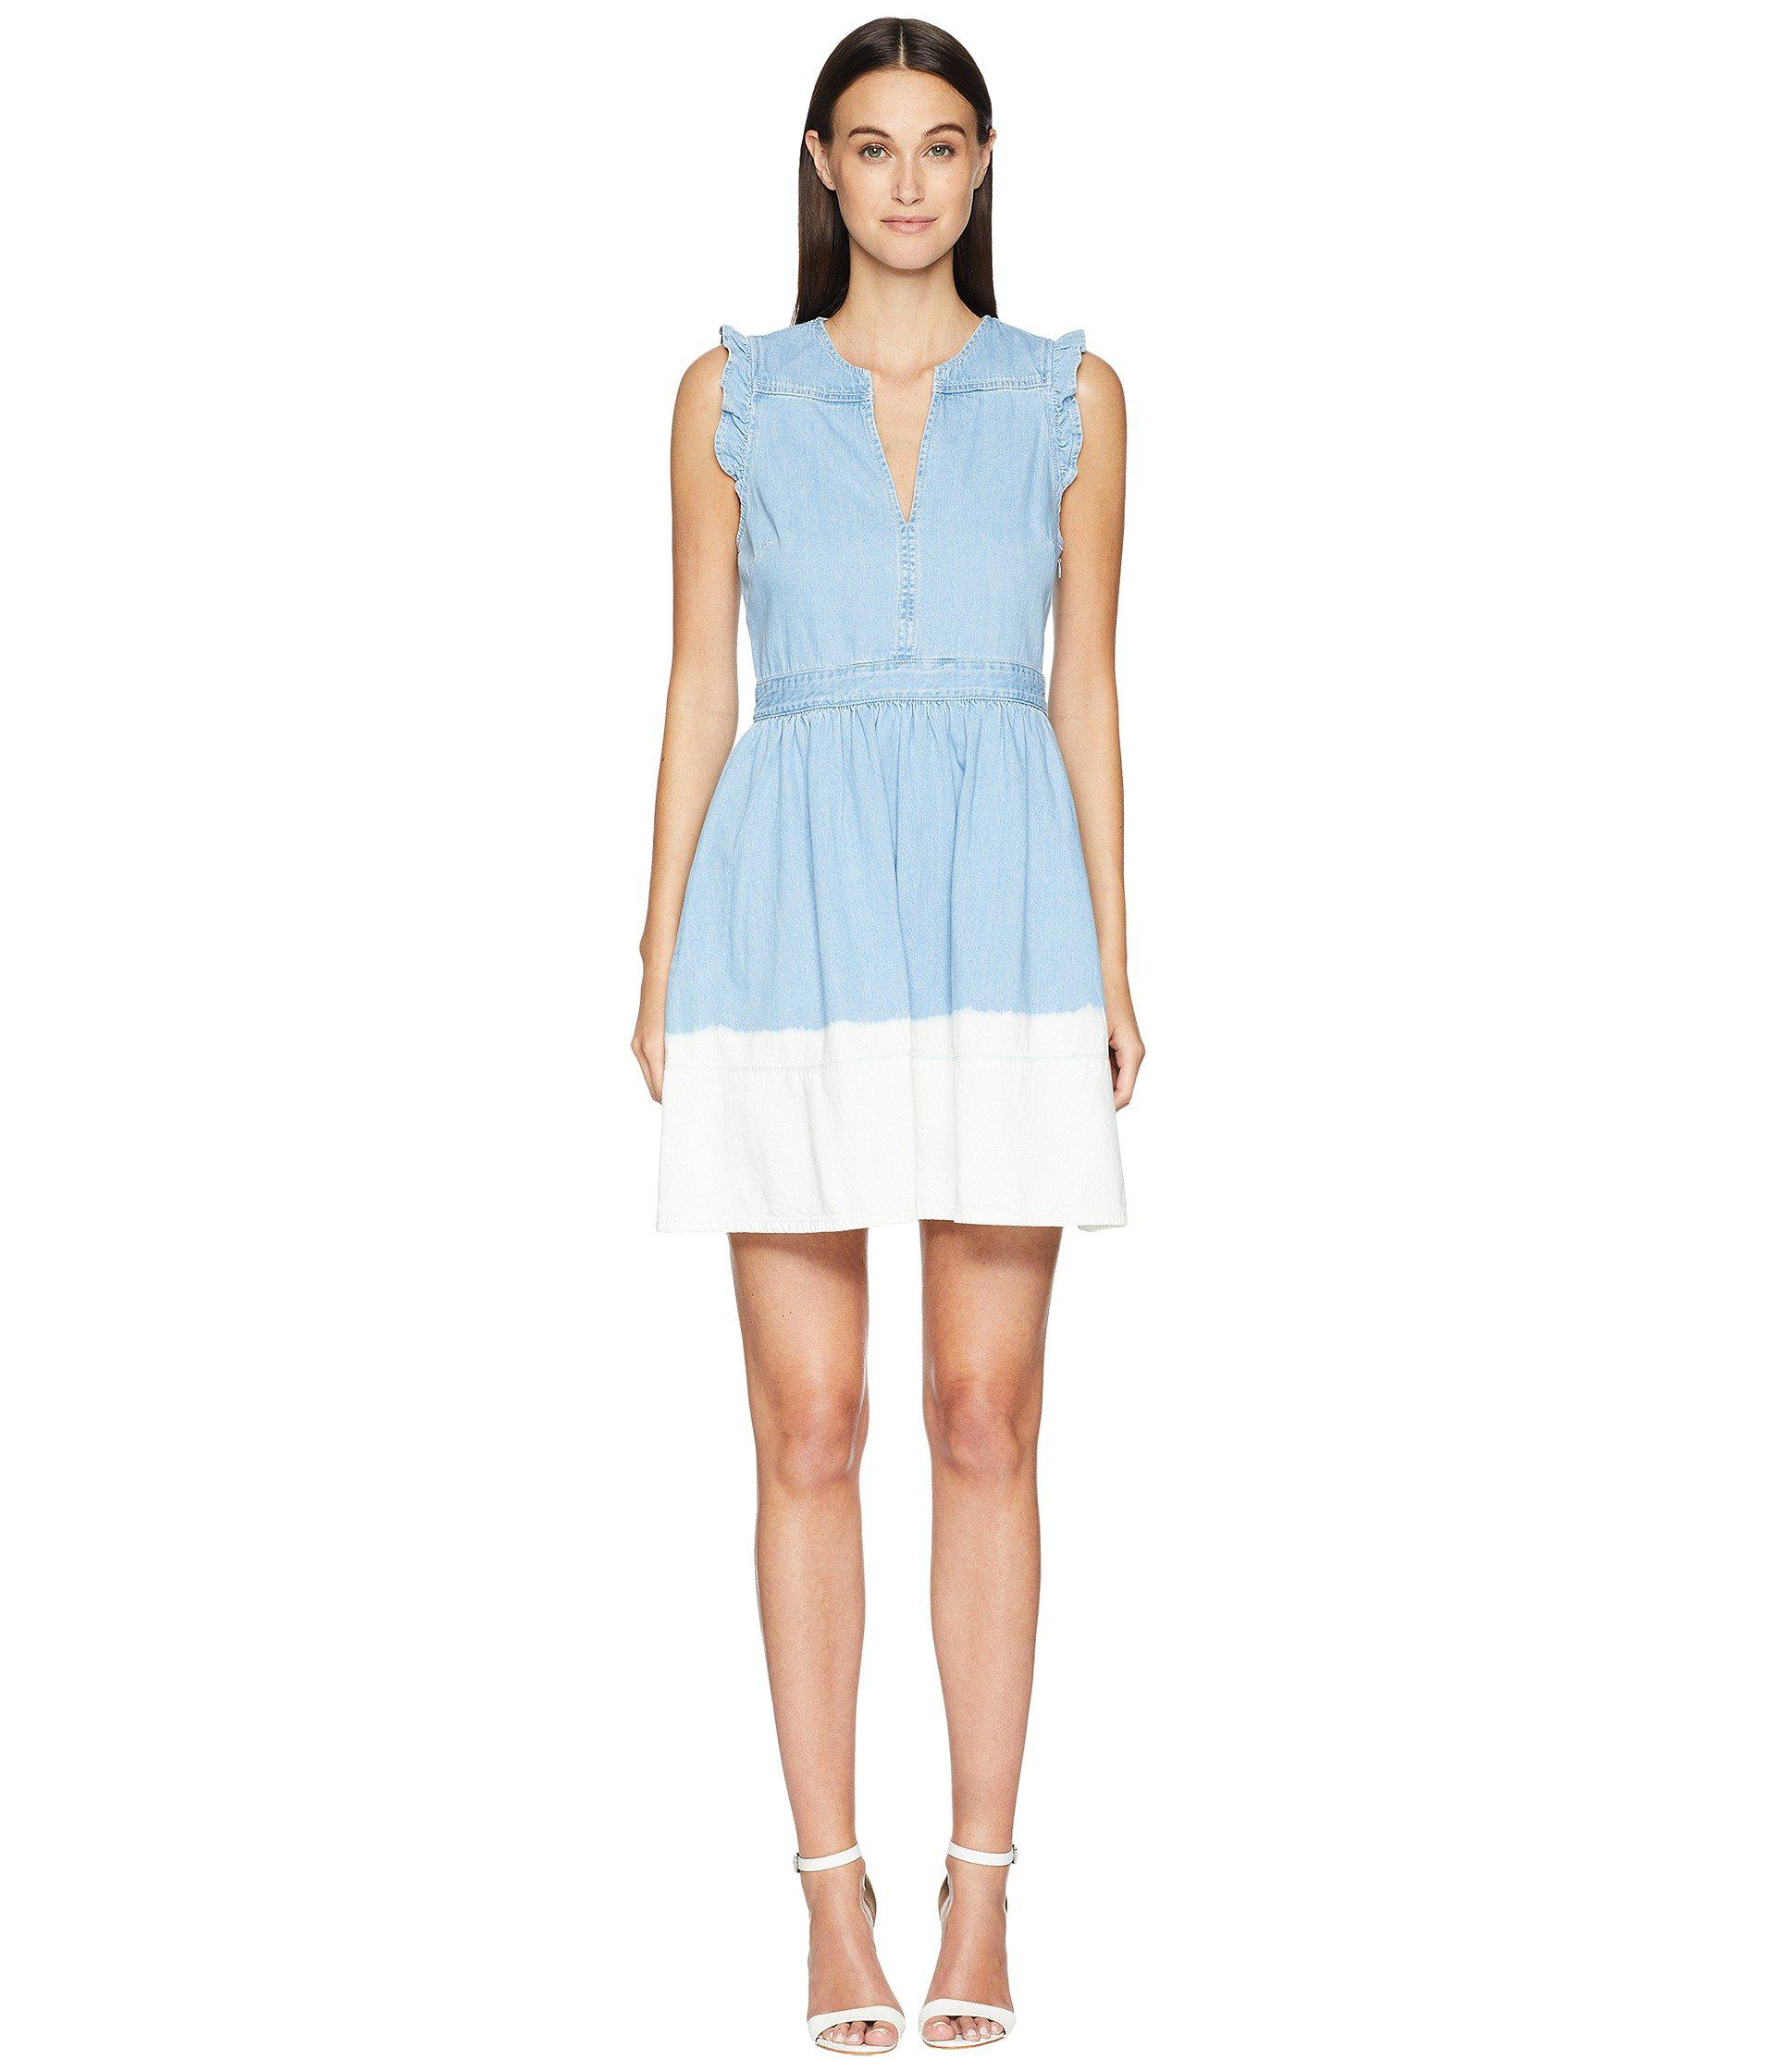 5faf4c6e07 Lyst - Kate Spade Dip Dye Denim Dress in Blue - Save 65%